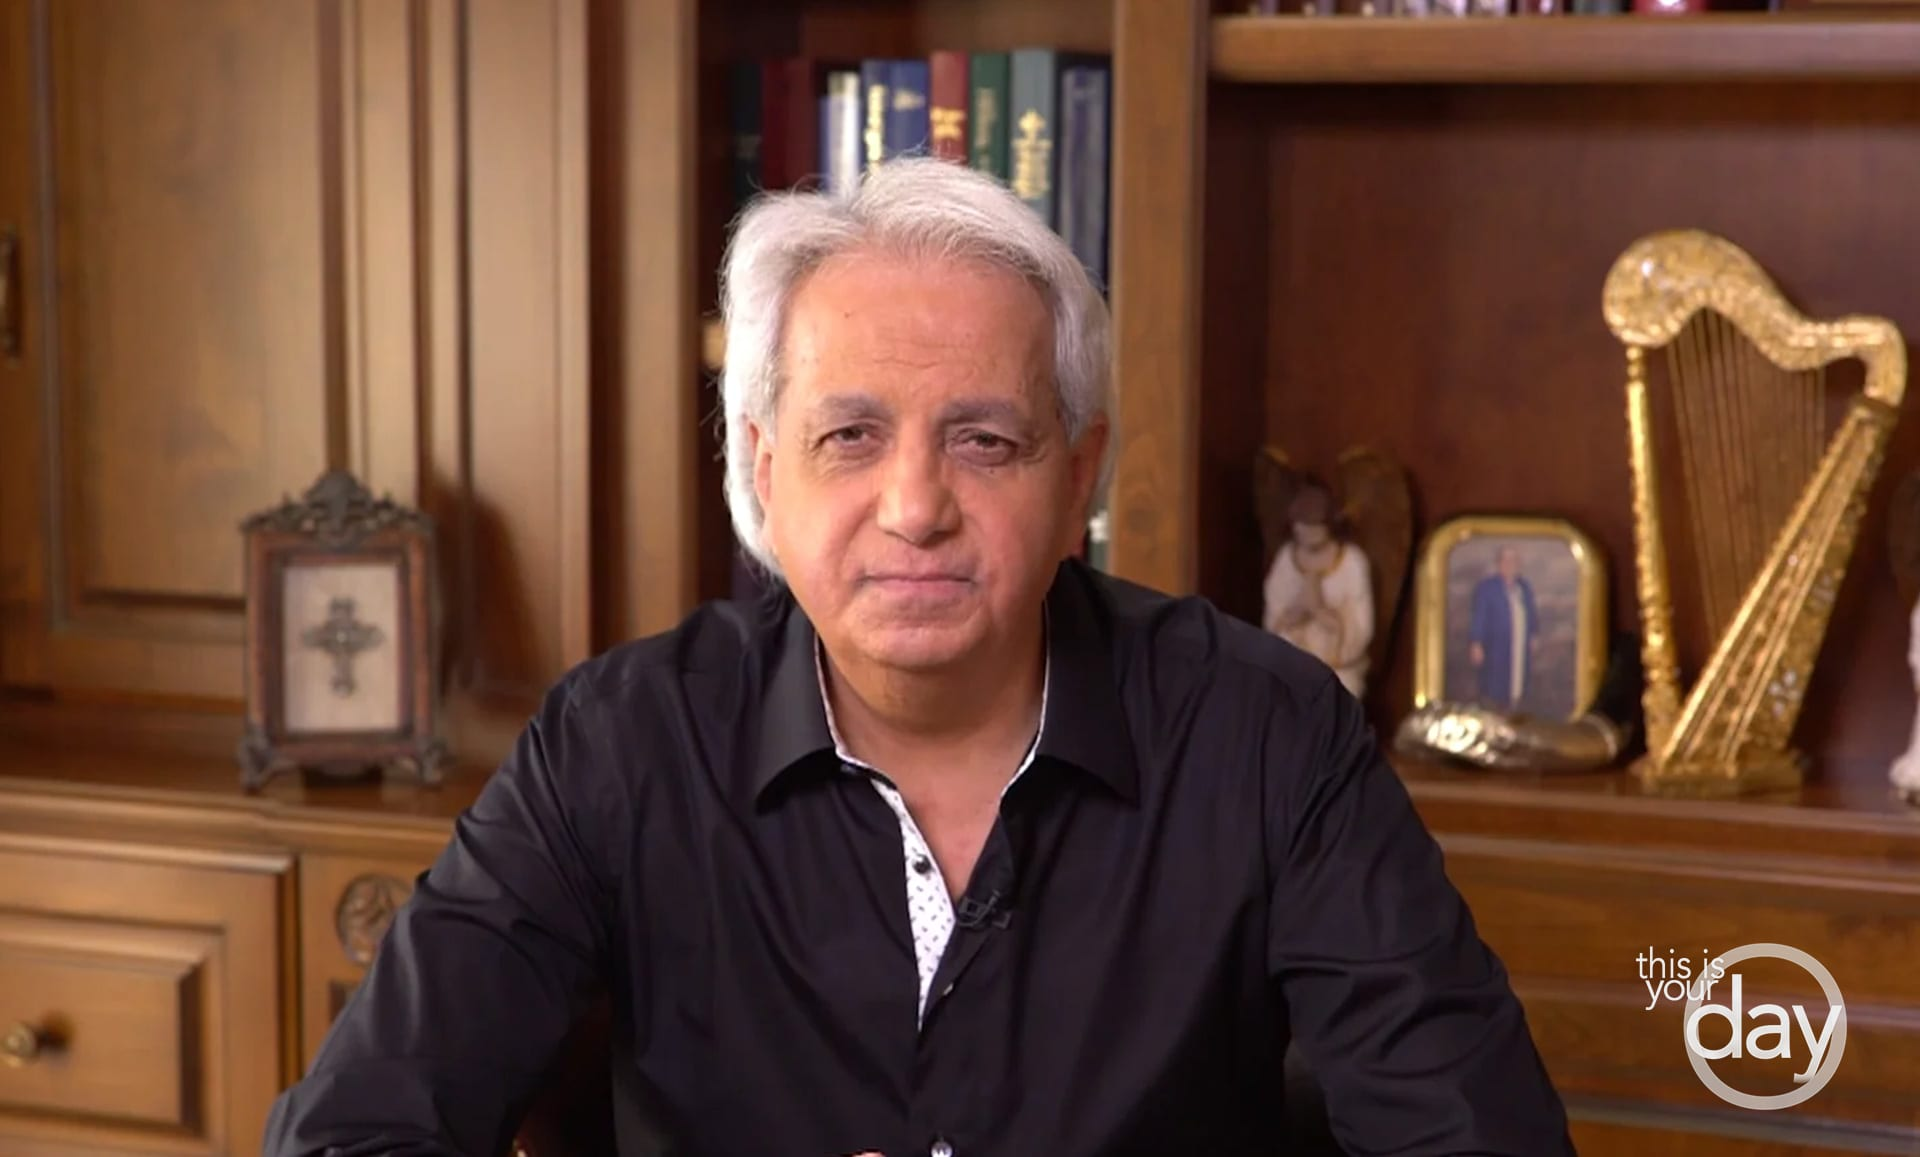 Healing God's Provision - This Is Your Day - Benny Hinn Ministries